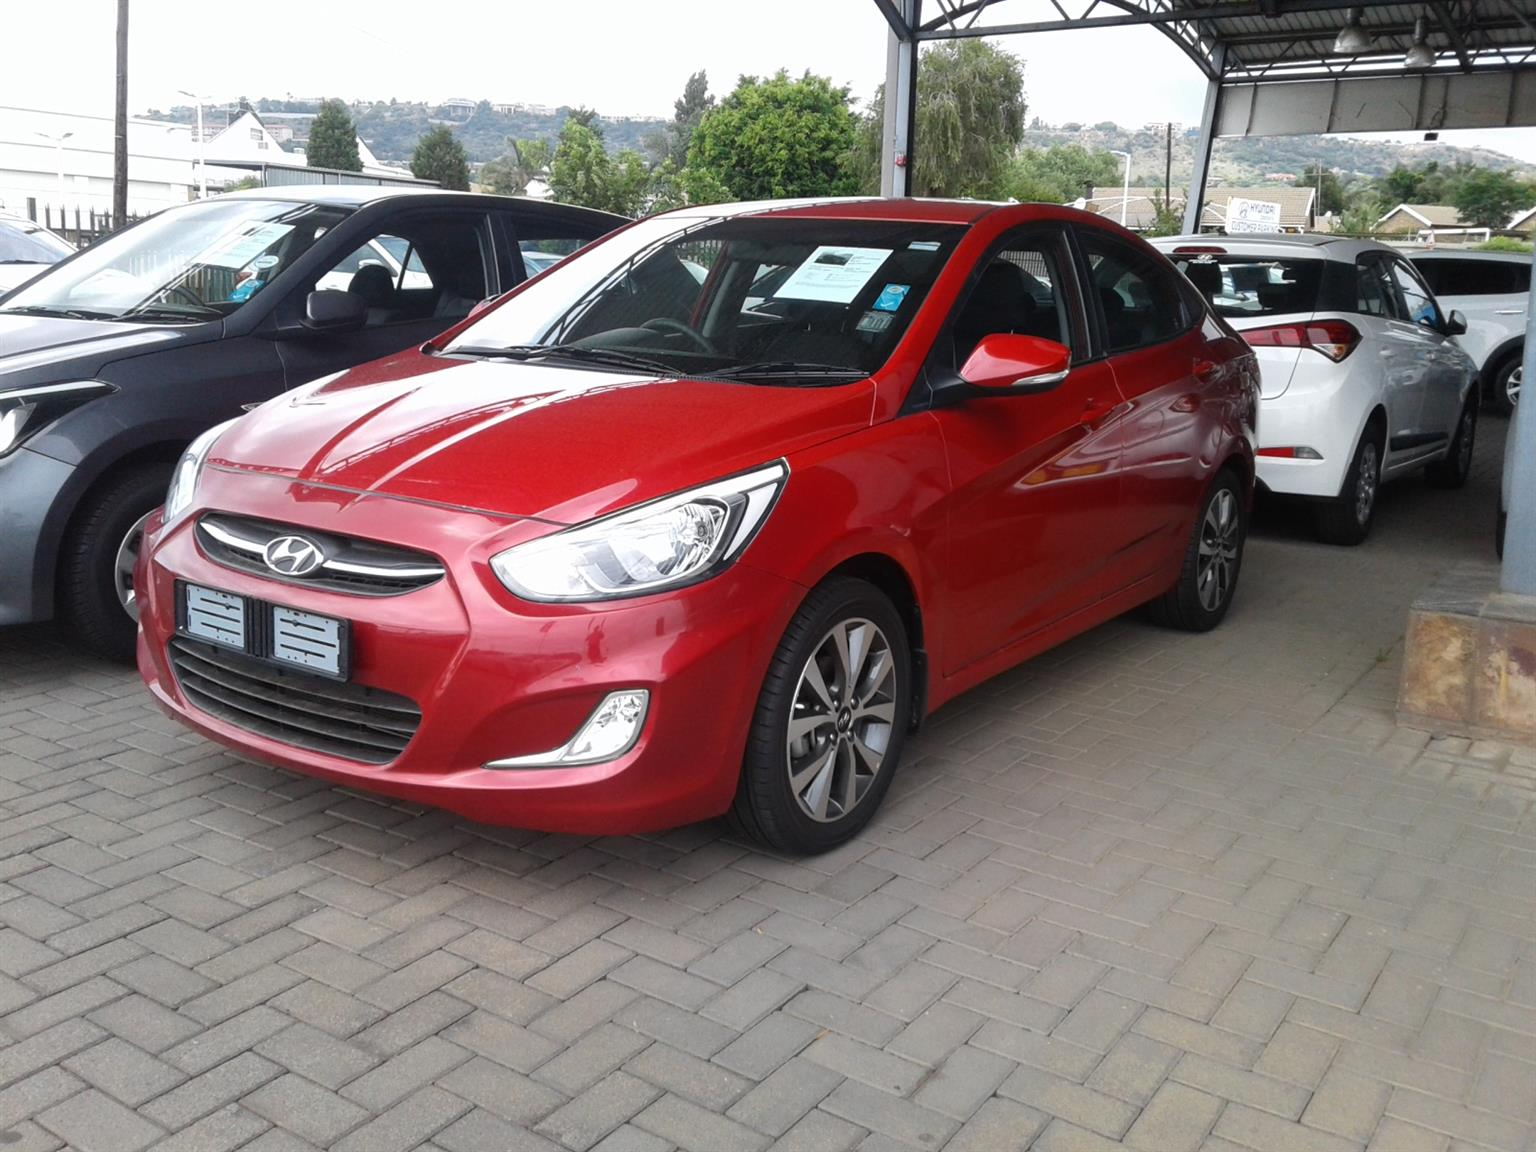 2017 Hyundai Accent sedan 1.6 Fluid auto